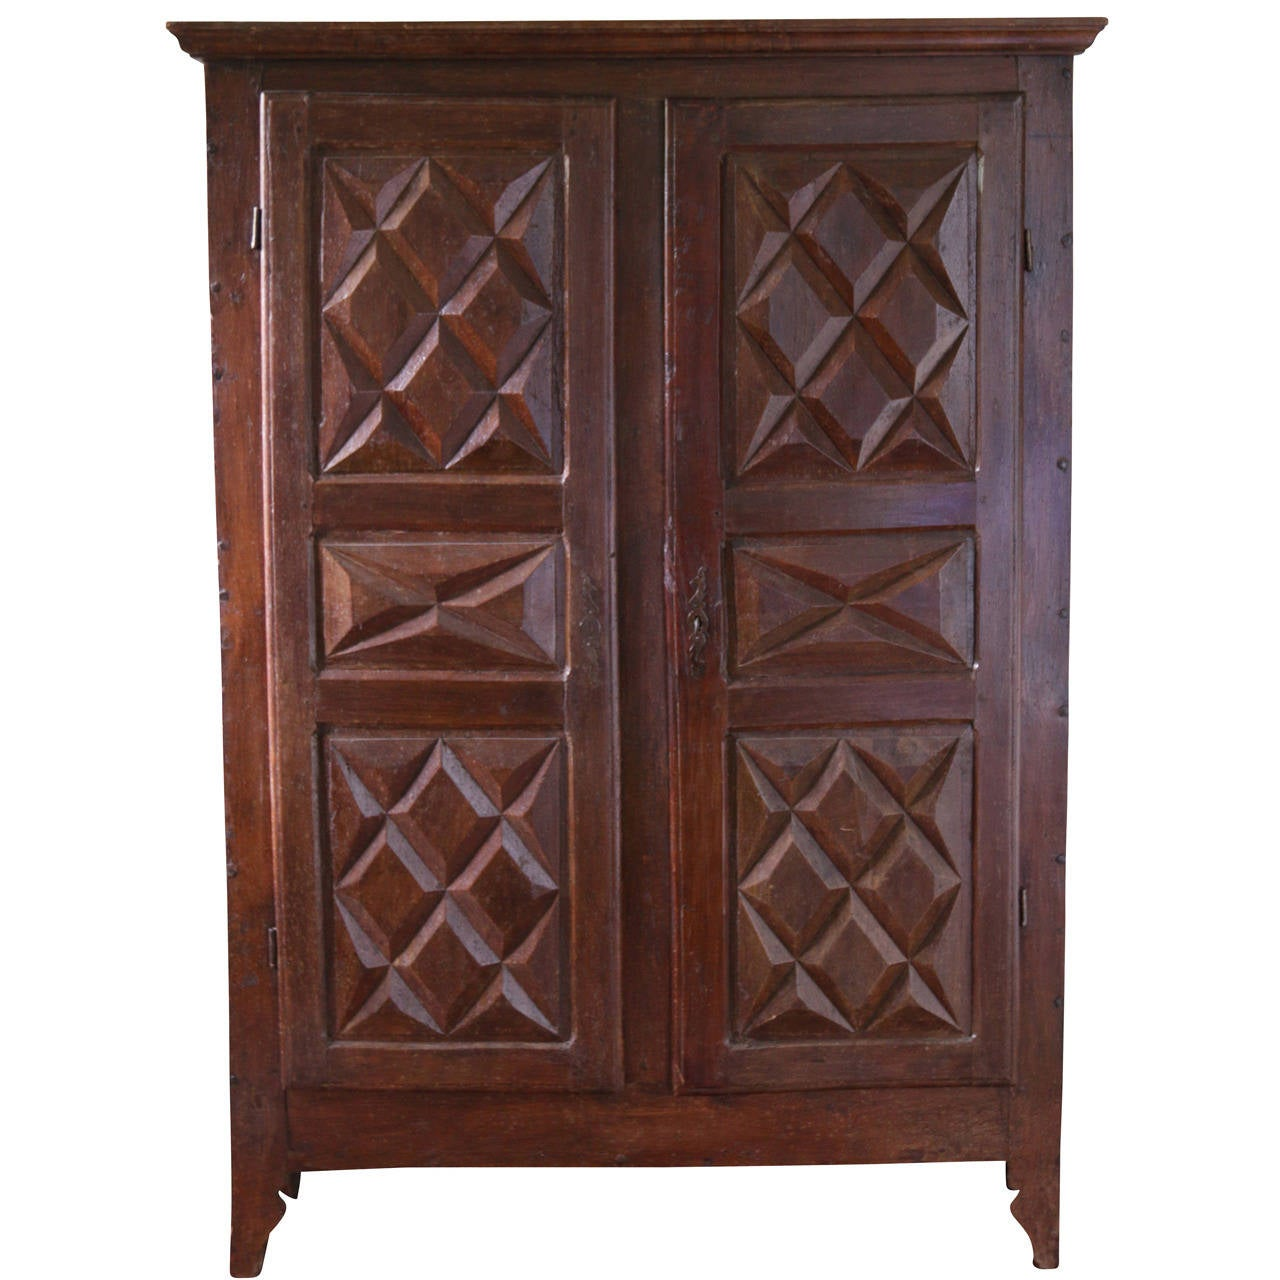 original louis xiii style two door armoire cabinet french. Black Bedroom Furniture Sets. Home Design Ideas